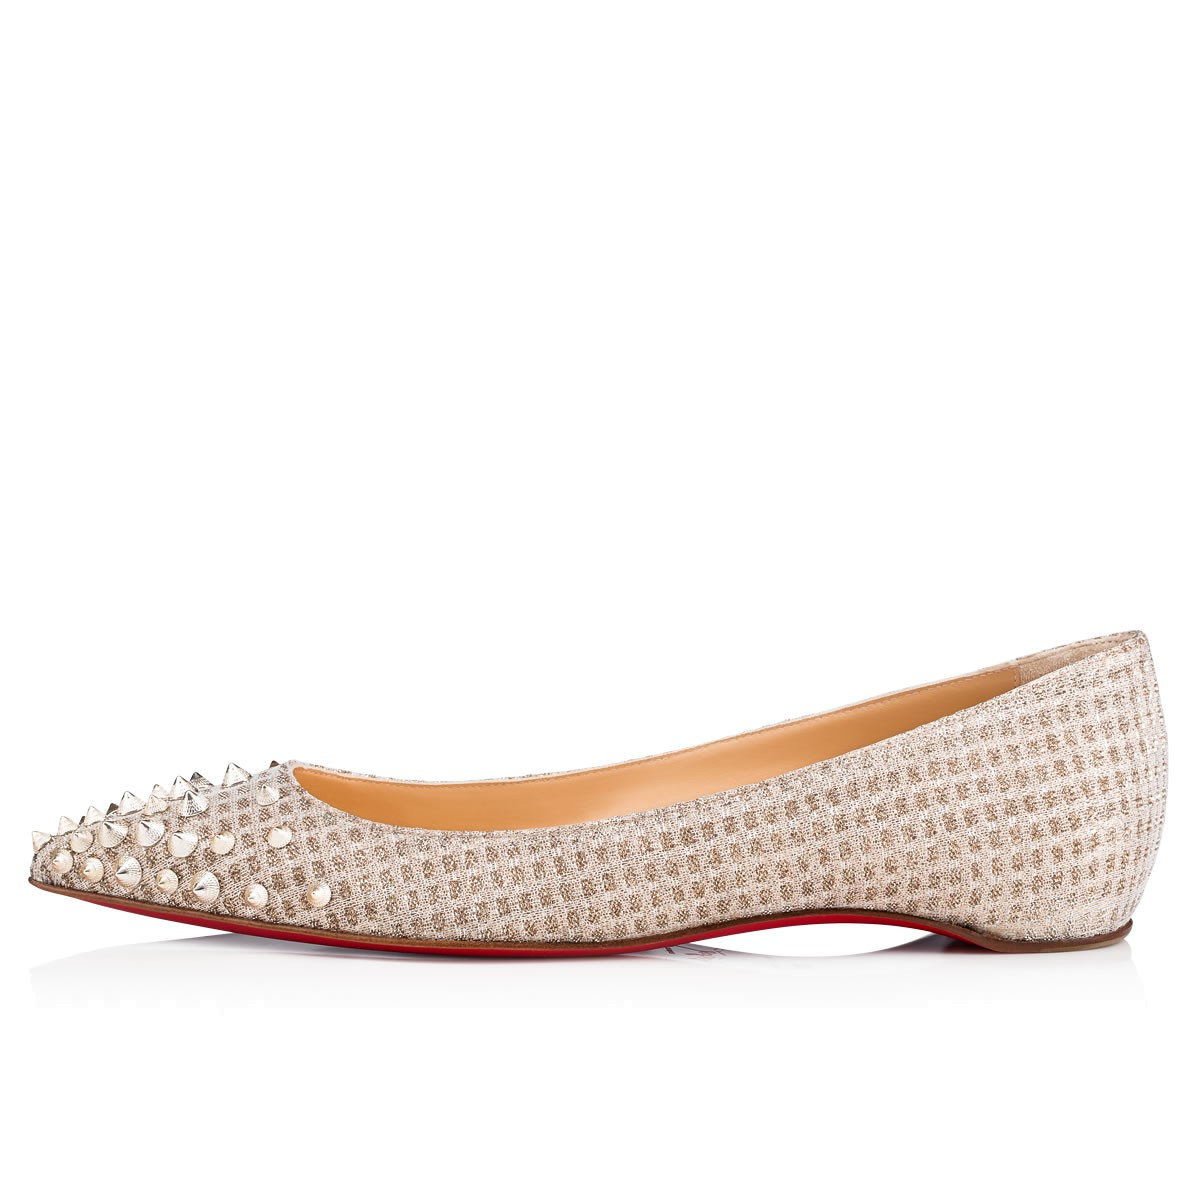 Women Shoes - Spikyshell - Christian Louboutin